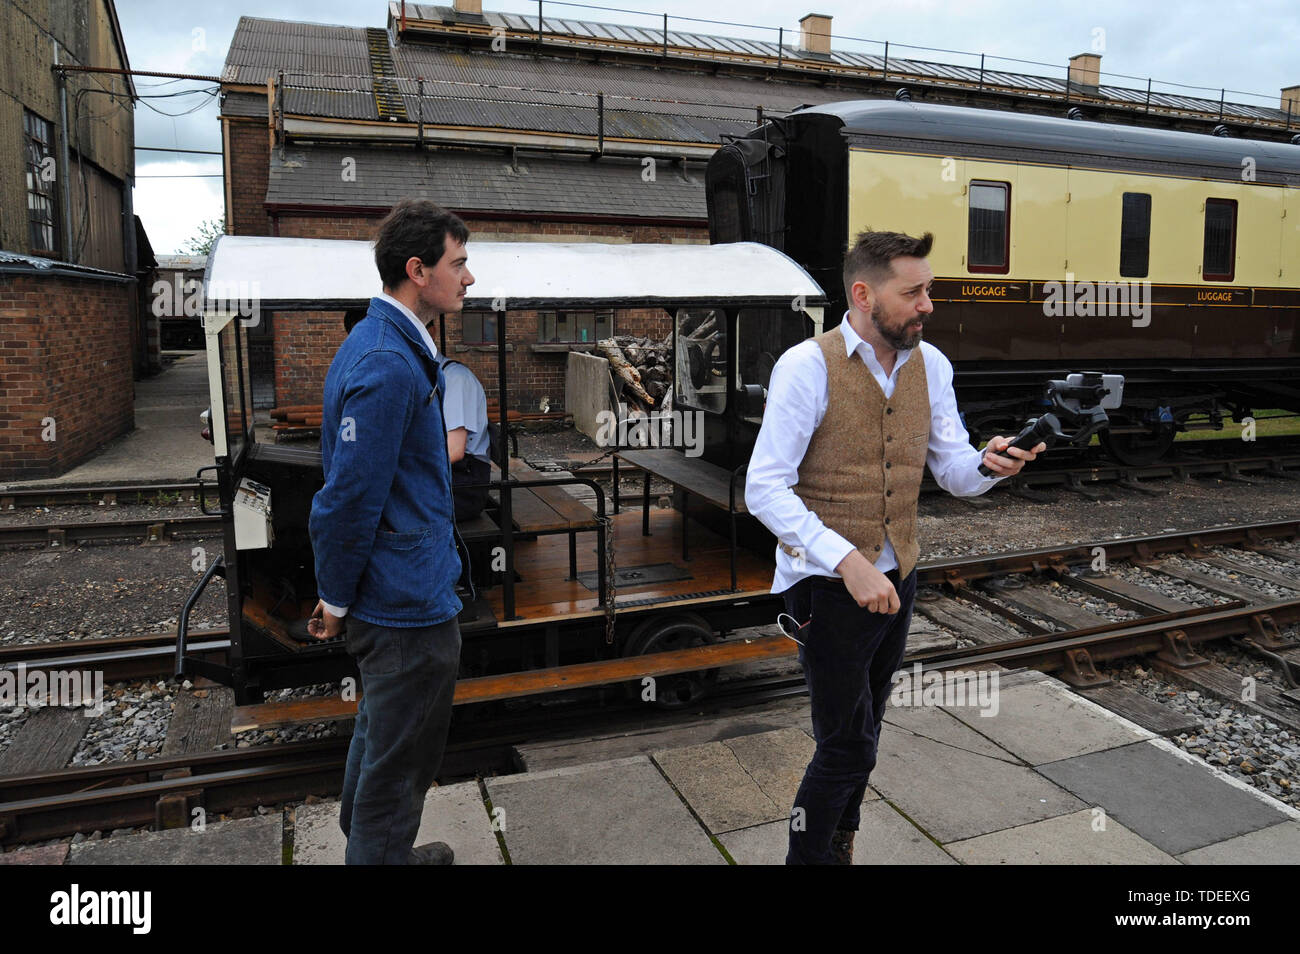 Didcot, UK. 15th June 2019. Broadcaster and rail enthusiast Mr Tim Dunn does a live stream broadcast from Didcot Railway Centre as part of the celebrations for the 175th anniversary of the opening of the Didcot to Oxford railway. G.P. Essex/Alamy Live News - Stock Image